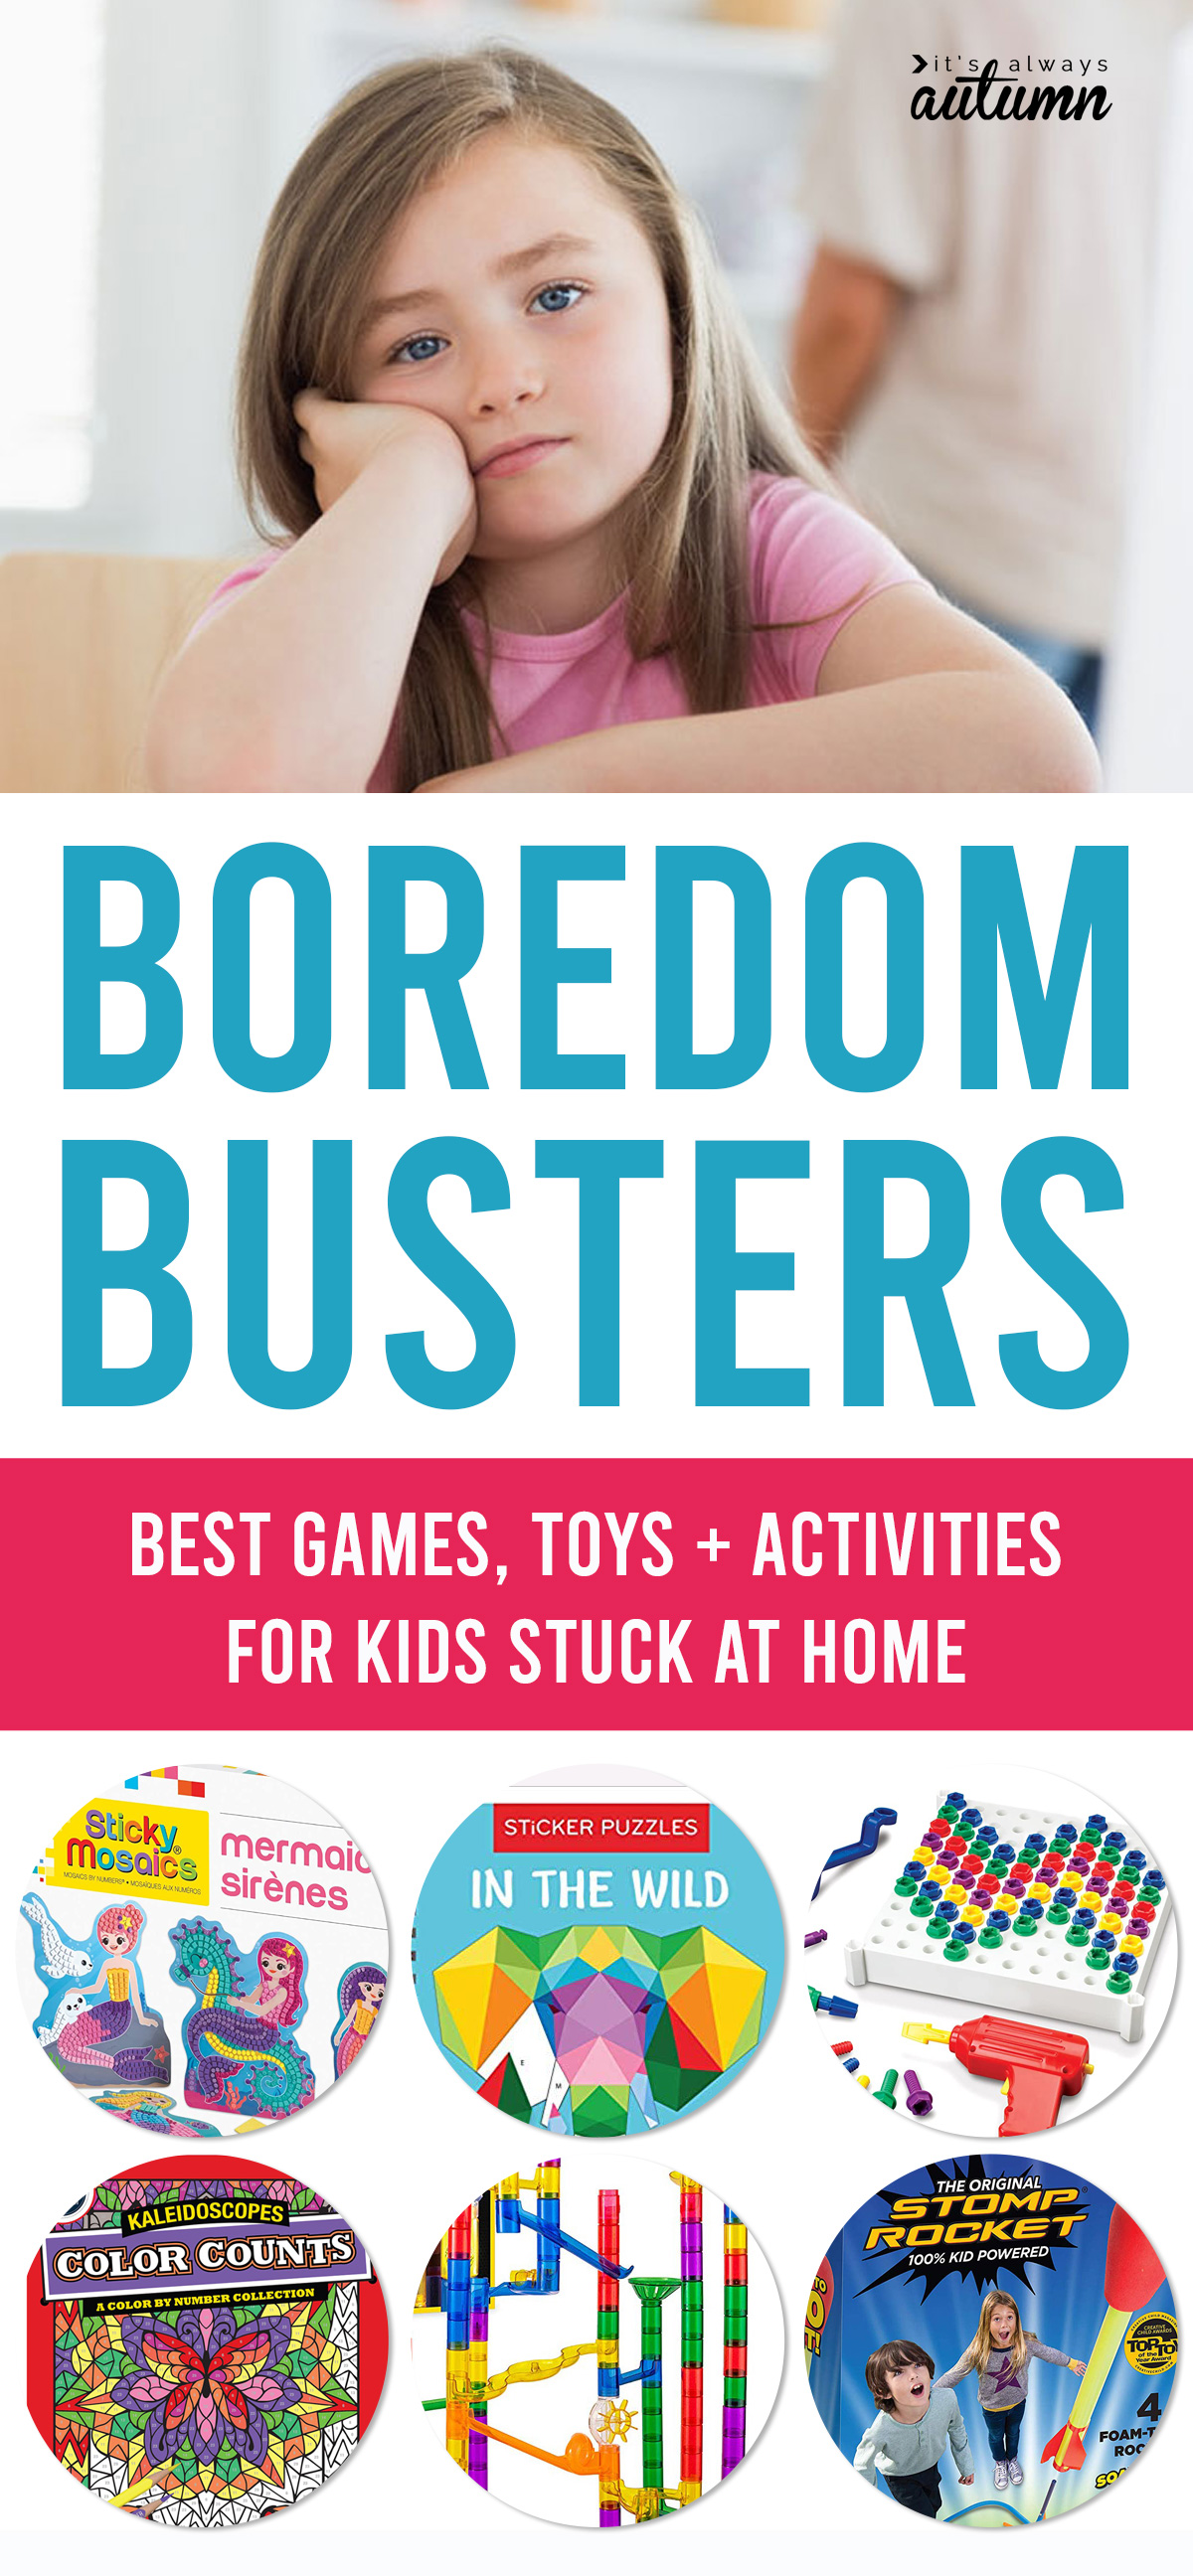 Bored kids? These are the best boredom busters: games, toys, and activities for kids who are stuck at home